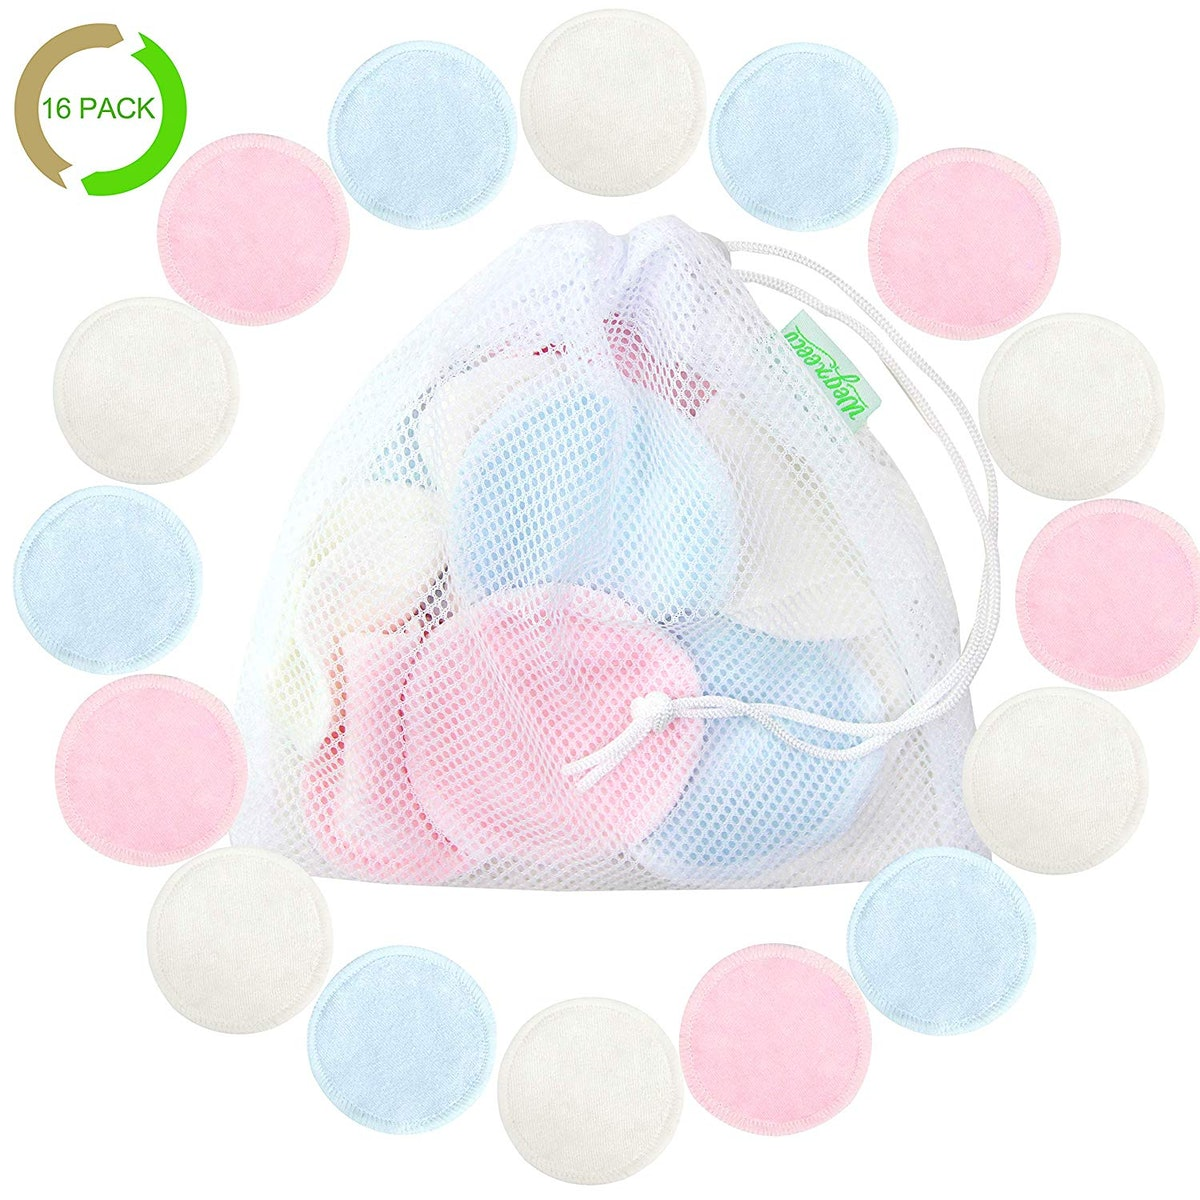 Cotton Rounds Reusable Bamboo Makeup Remover Pads For Face (16-Pack)